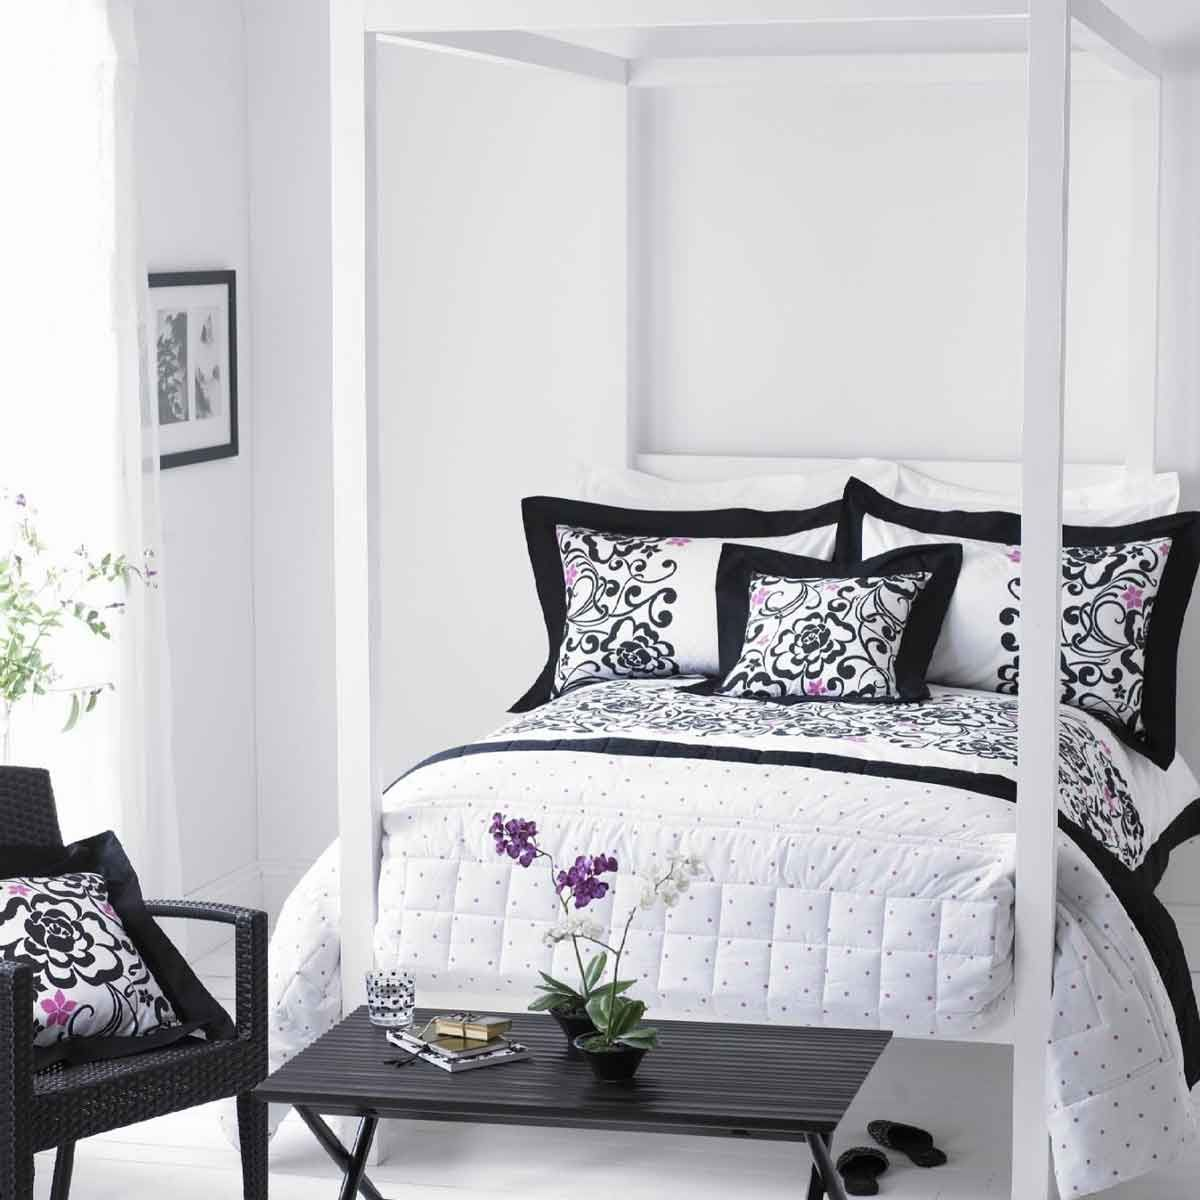 Beautiful Black And White Themed Bedroom  Master Bedroom New Monochrome Bedroom Design Ideas Design Decoration